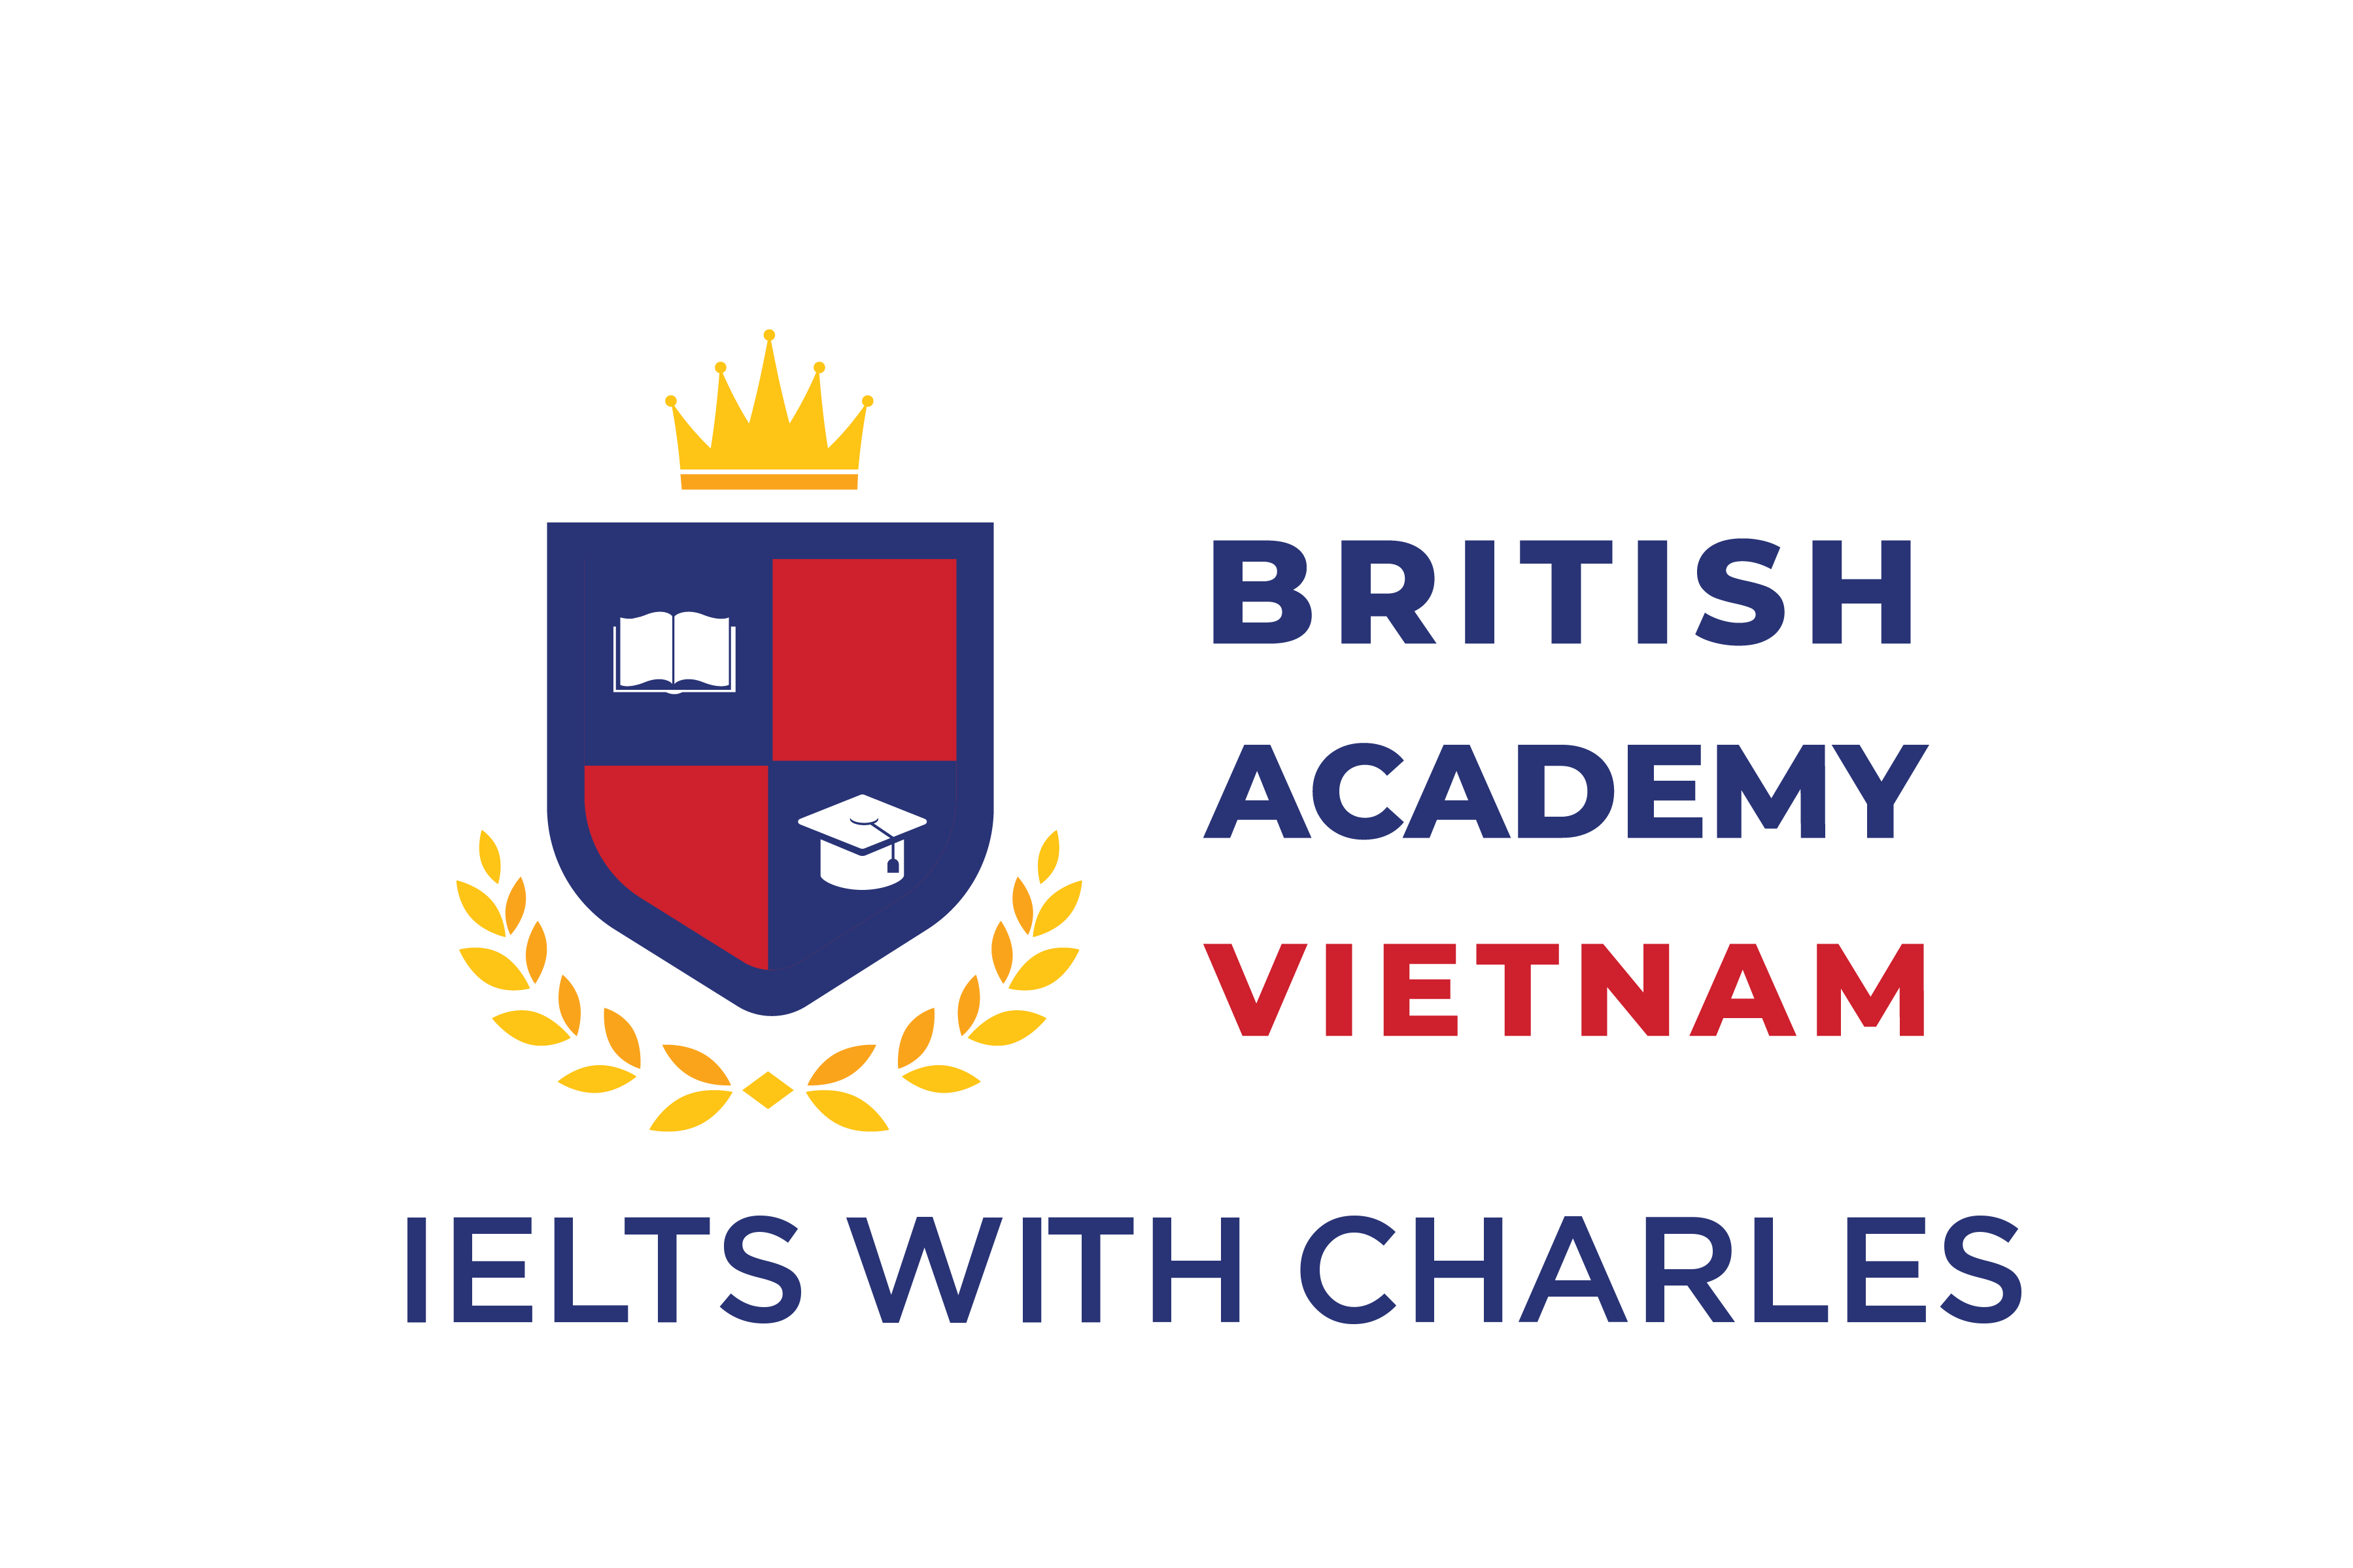 IELTS with Charles